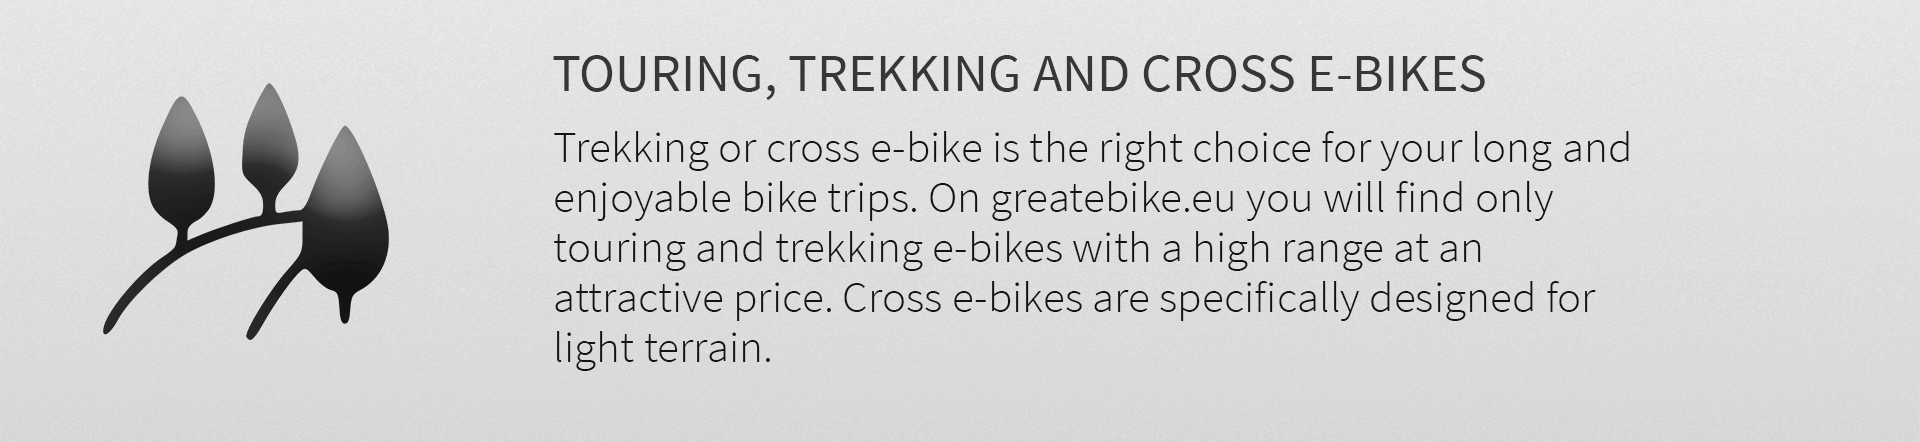 Trekking or cross e-bike is the right choice for your long and enjoyable bike trips. On greatebike.eu you will find only touring and trekking e-bikes with a high range at an attractive price. Cross e-bikes are specifically designed for light terrain.